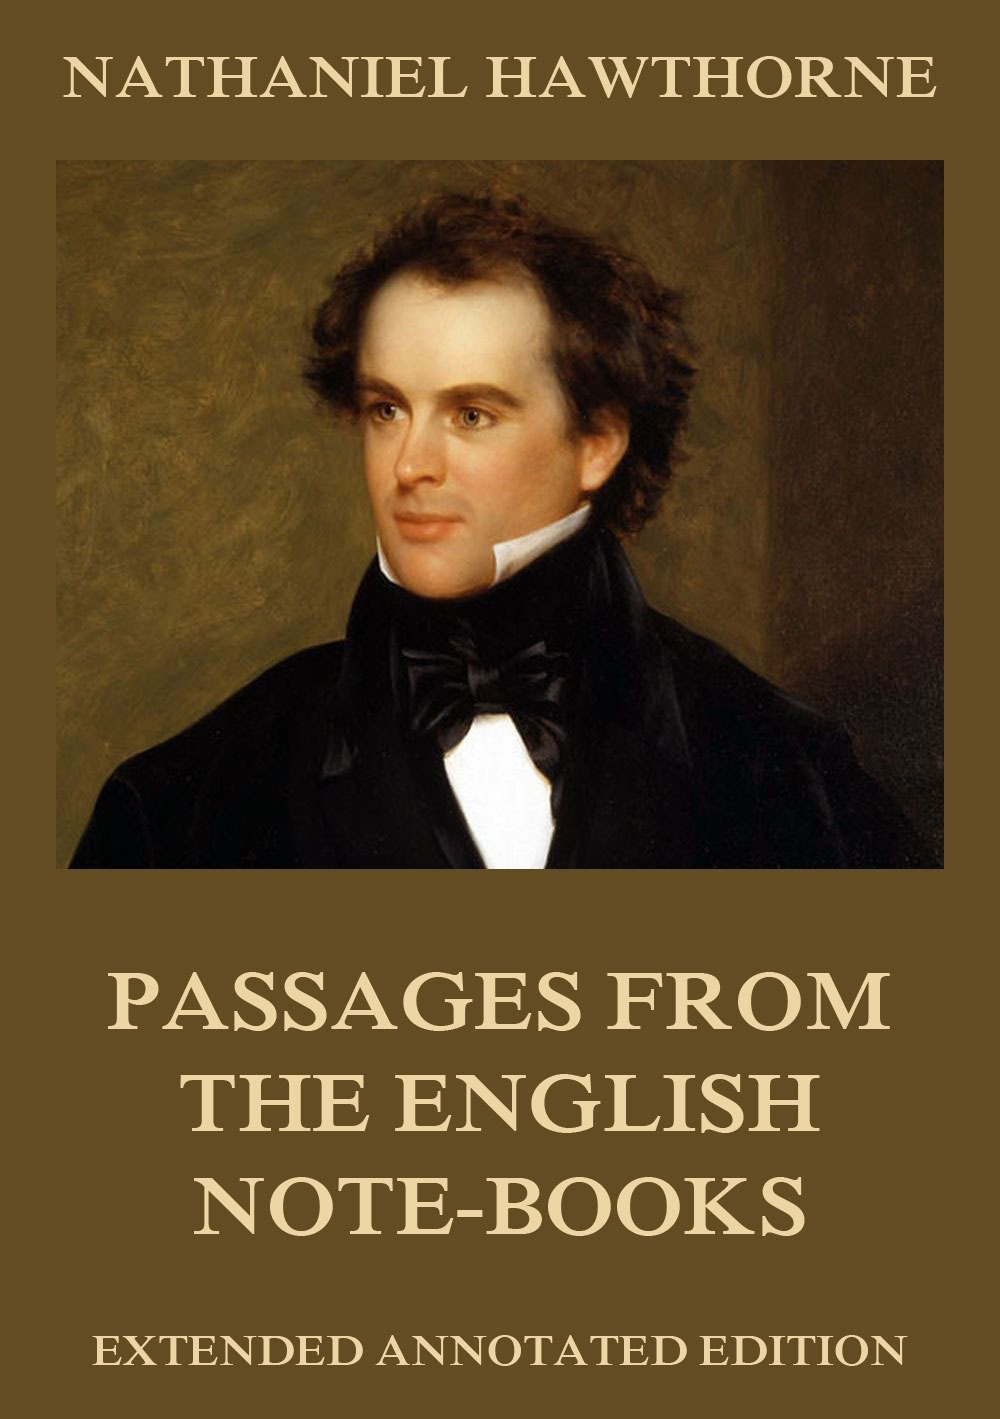 Nathaniel Hawthorne - Passages from the English Note-Books